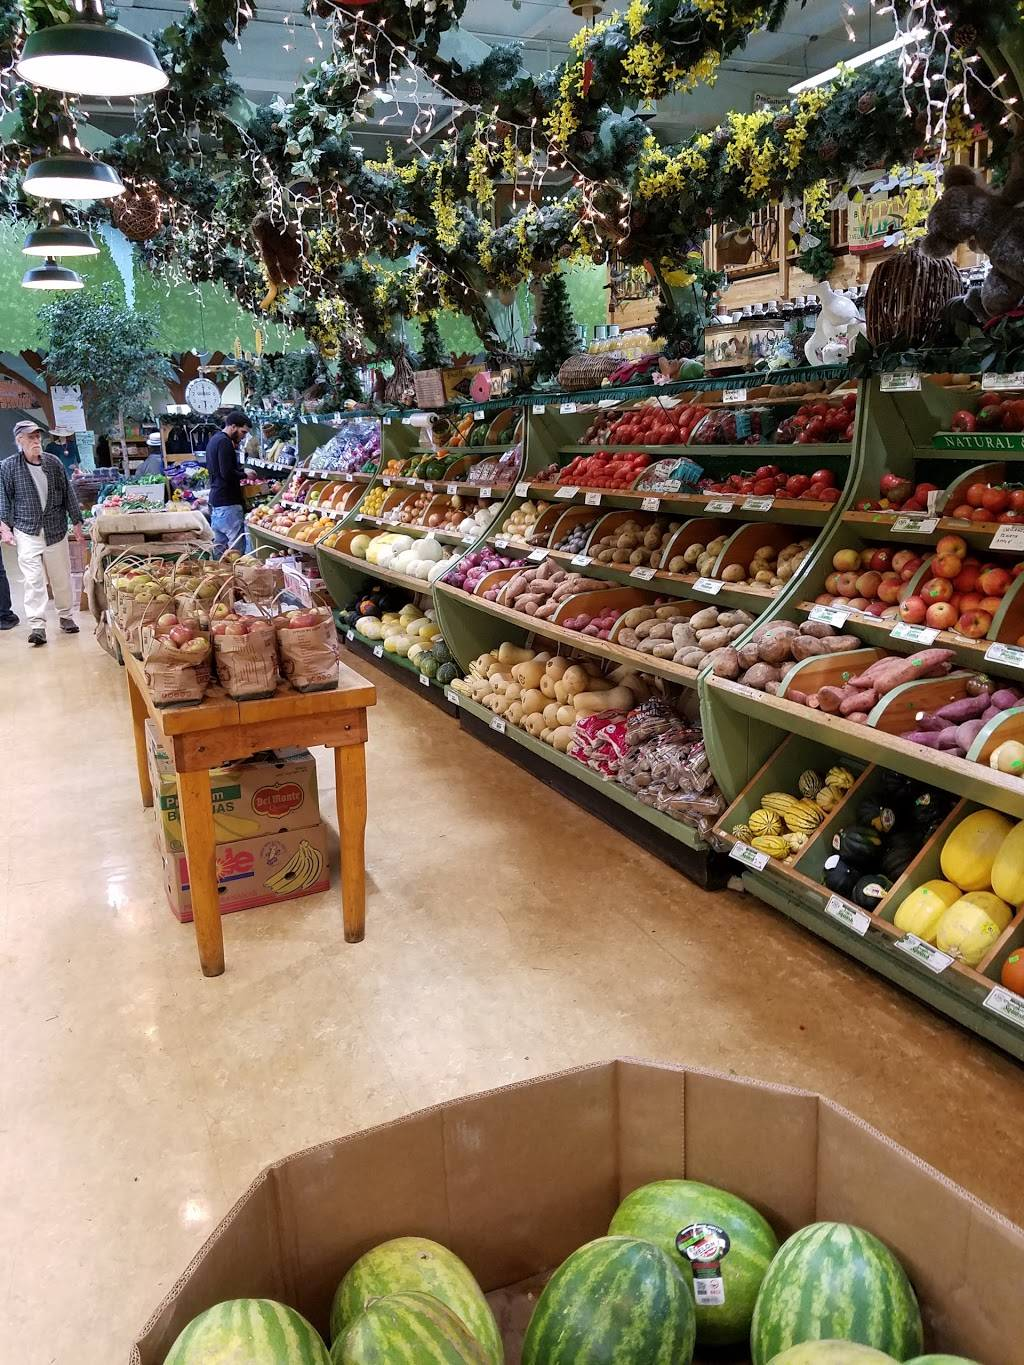 Edge of the Woods Market | bakery | 379 Whalley Ave, New Haven, CT 06511, USA | 2037871055 OR +1 203-787-1055